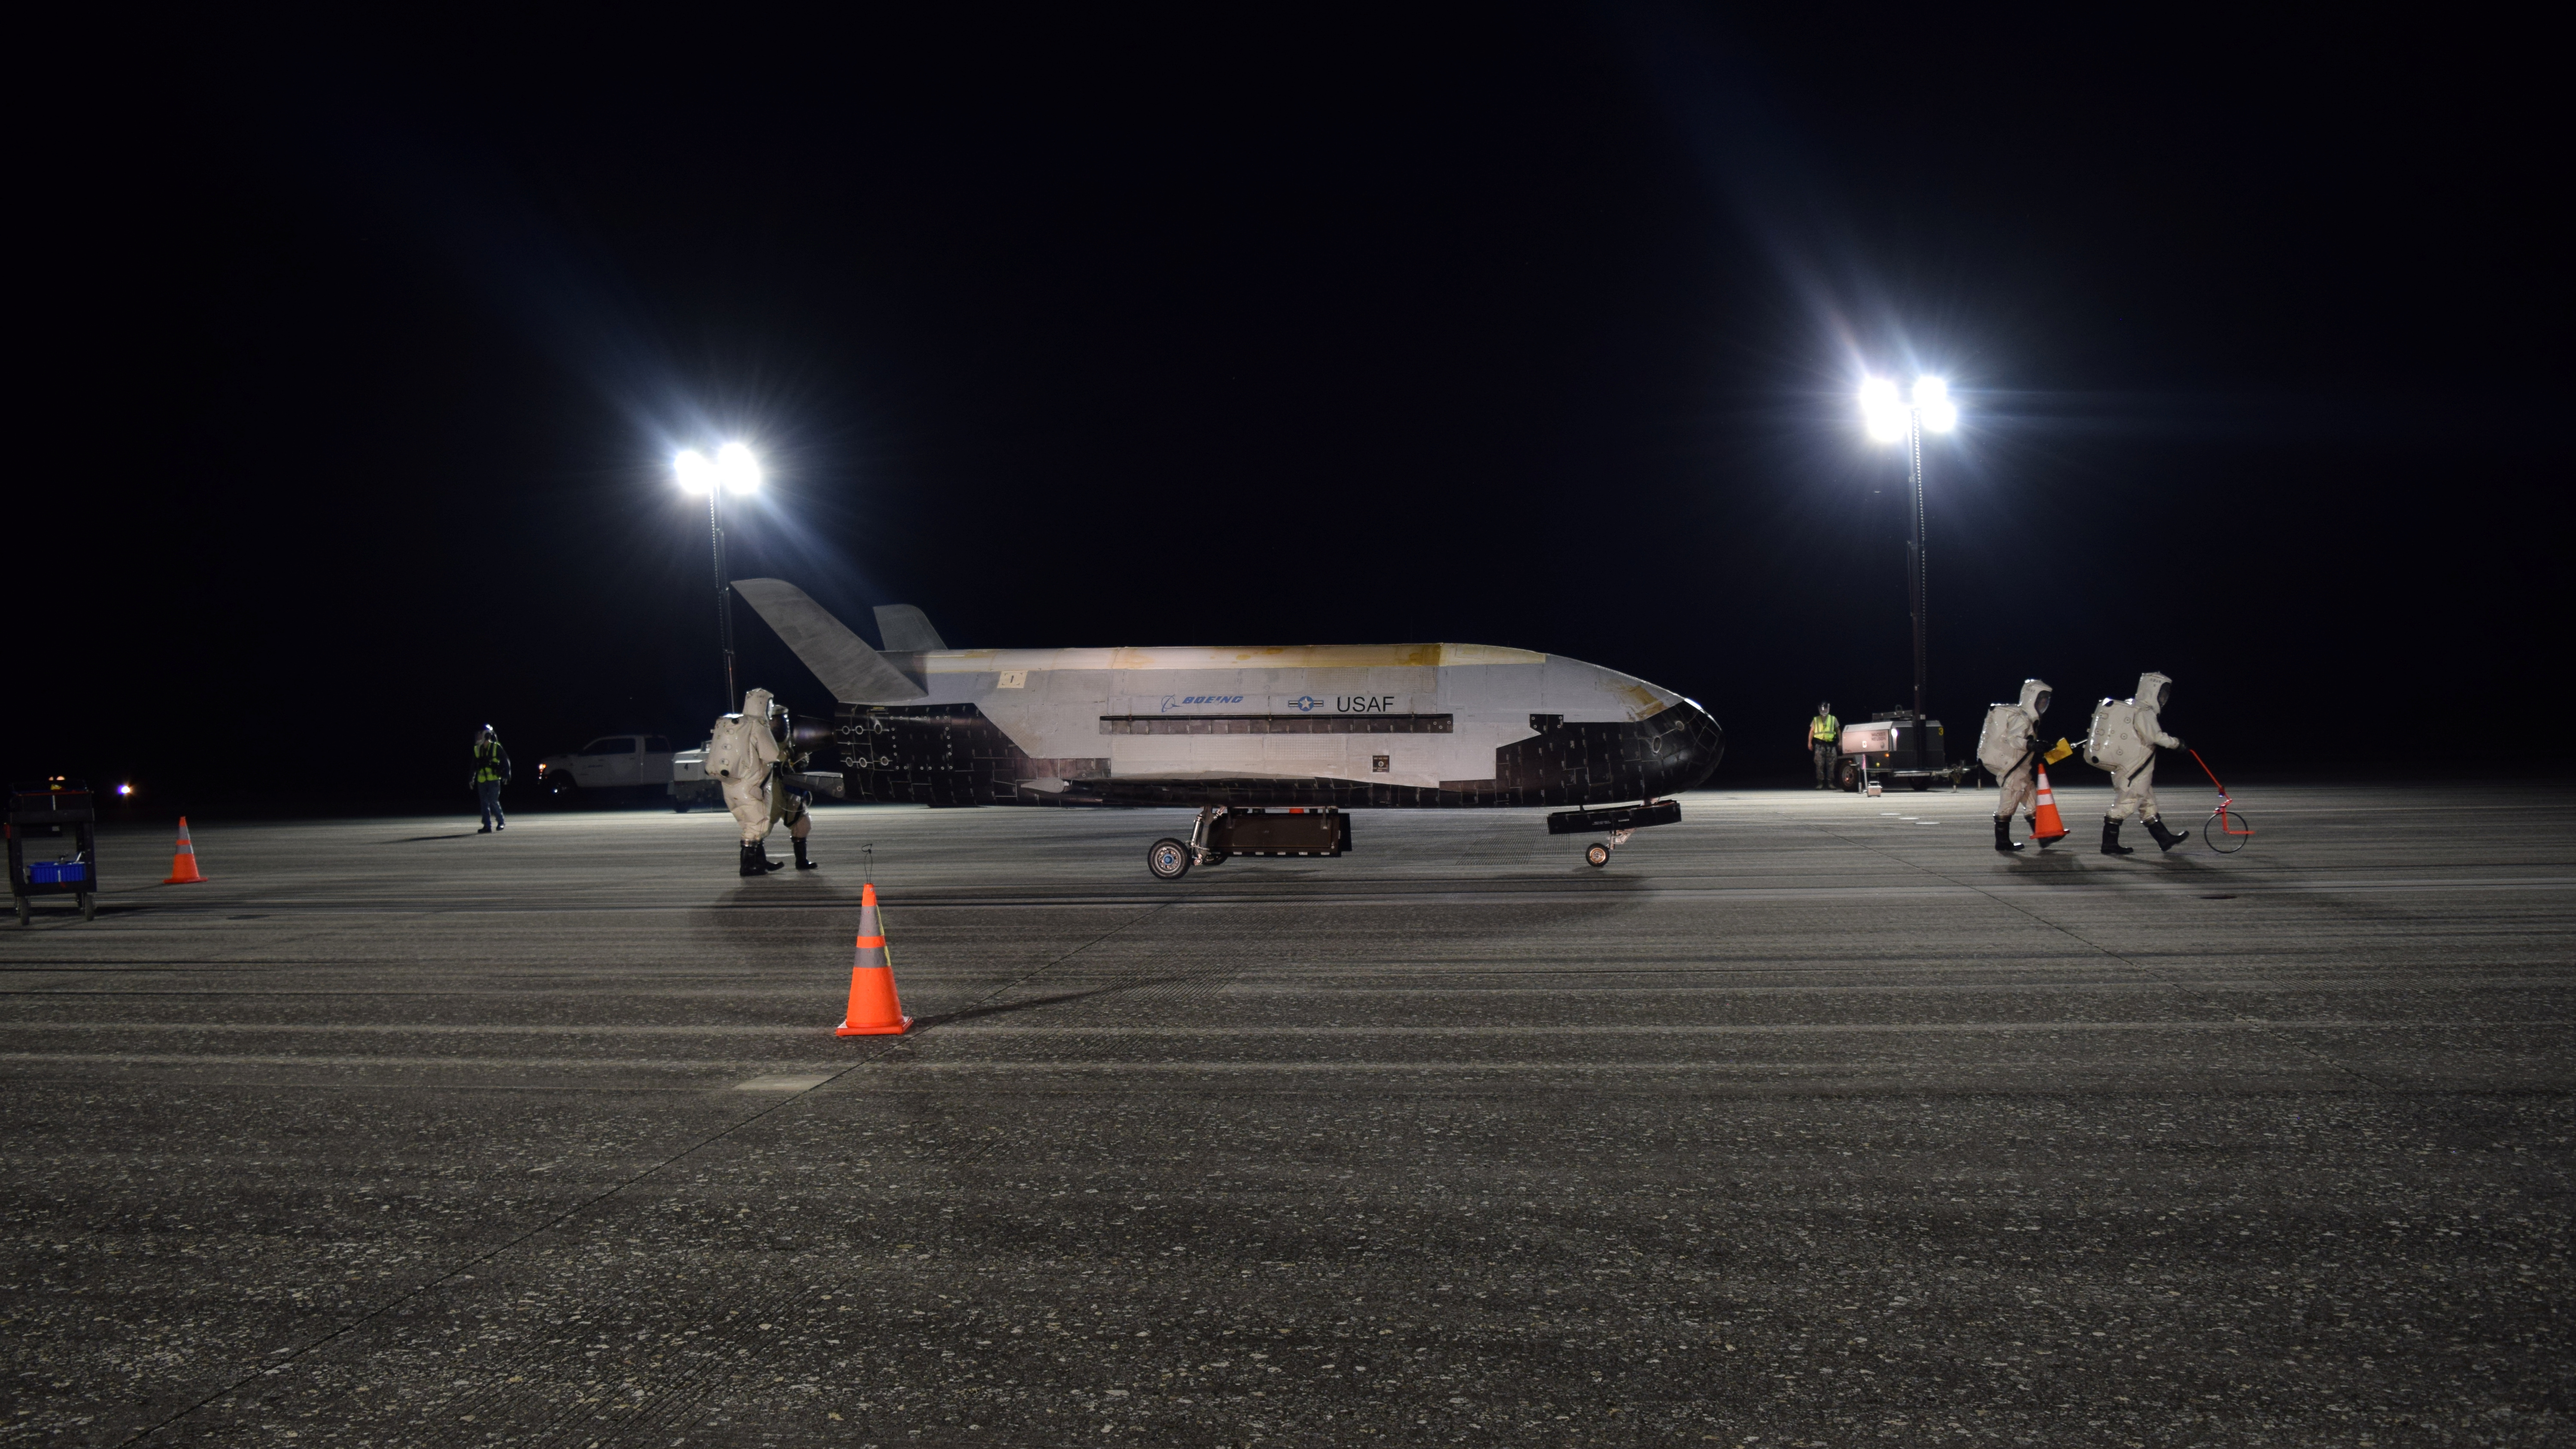 Mysterious X-37B space plane lands after record 780 days in orbit